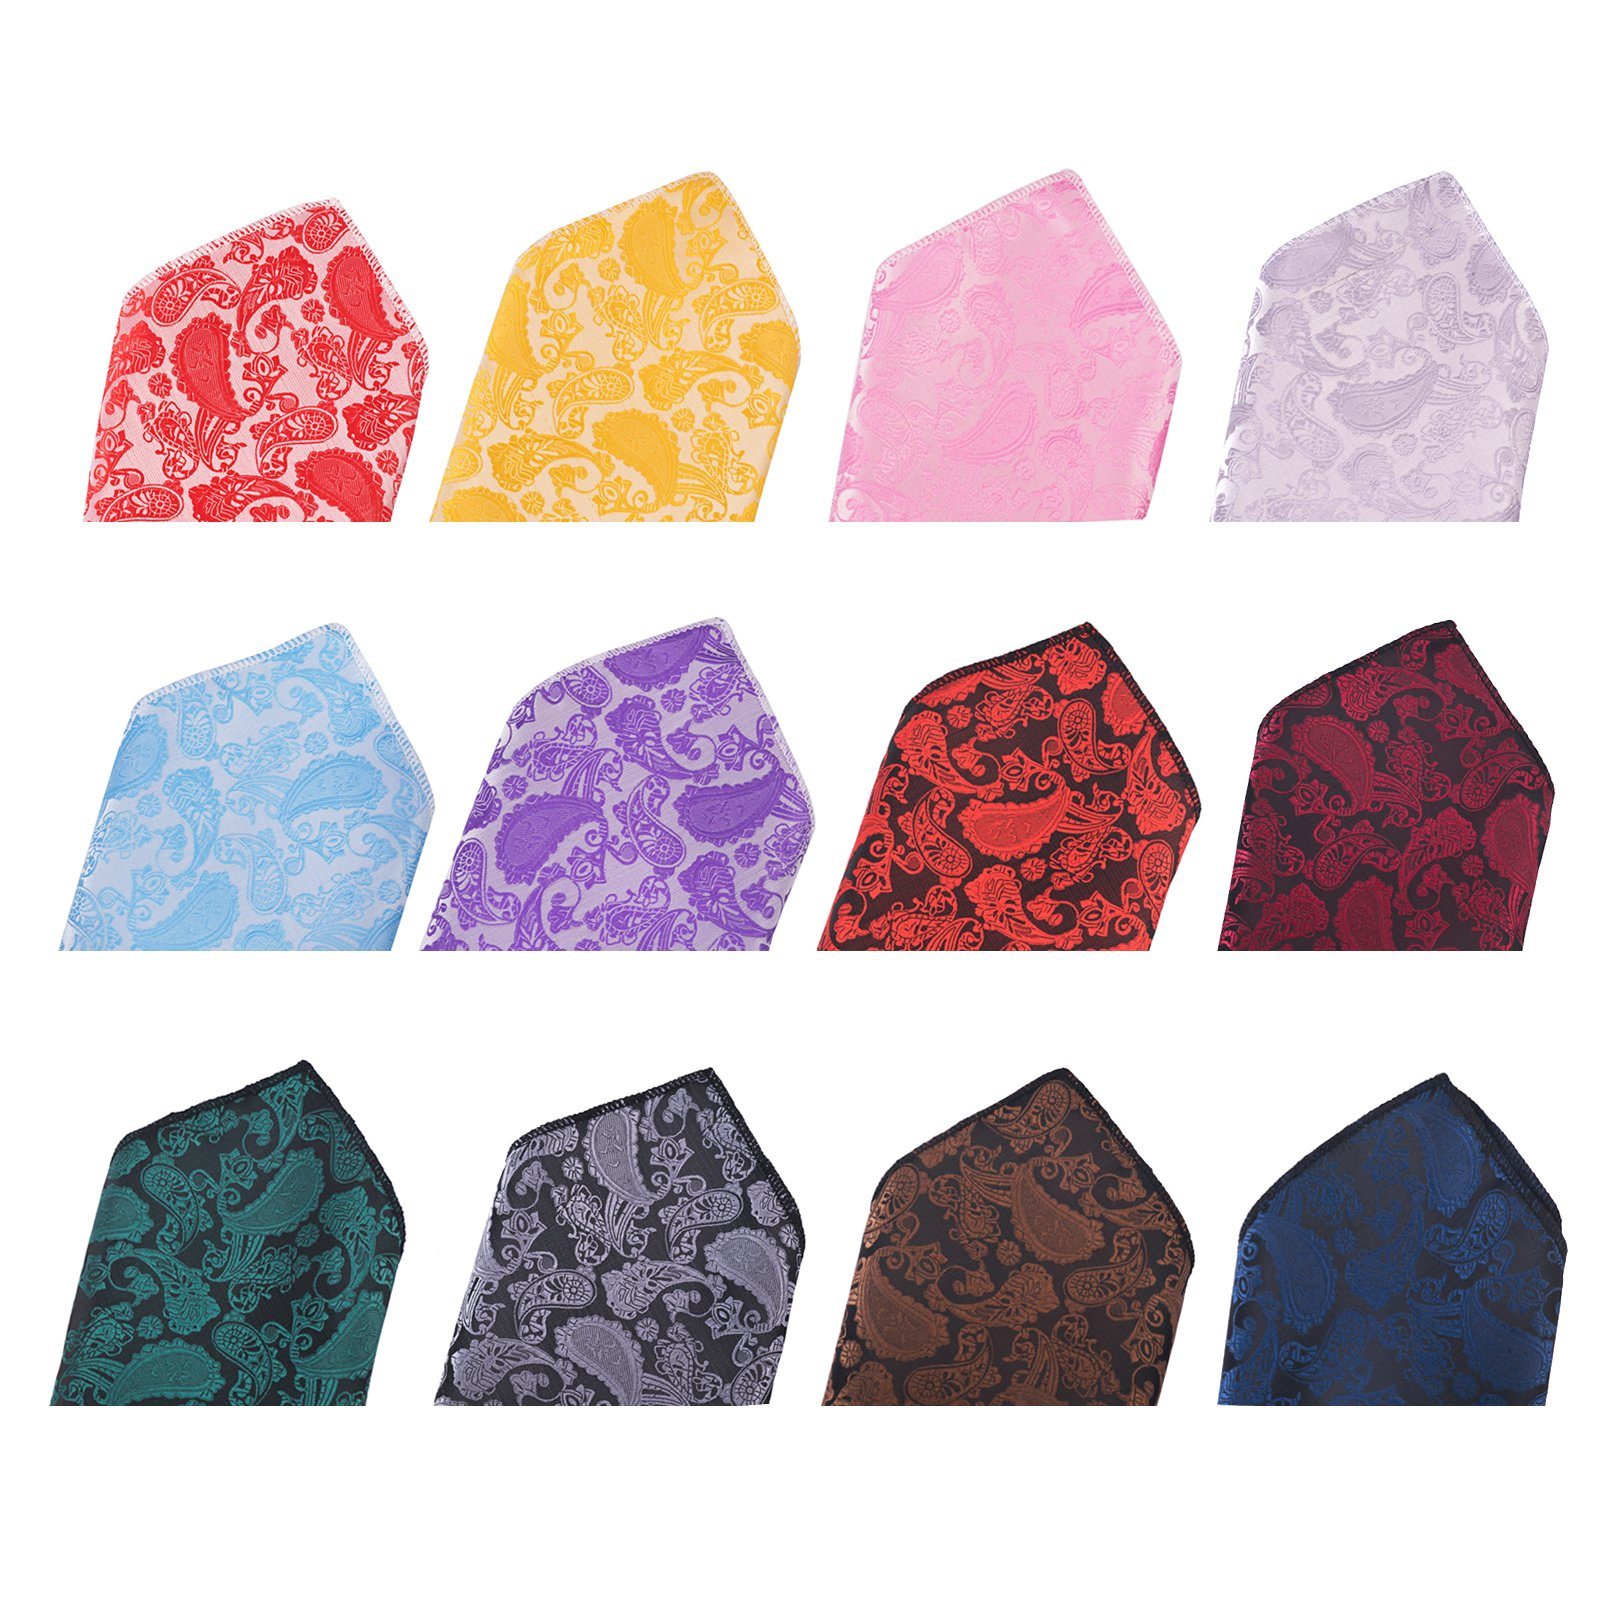 12 PCS Mens Square Handkerchief Printing patterns Pocket for Wedding Party(Pack of 12) by DanDiao (Image #3)